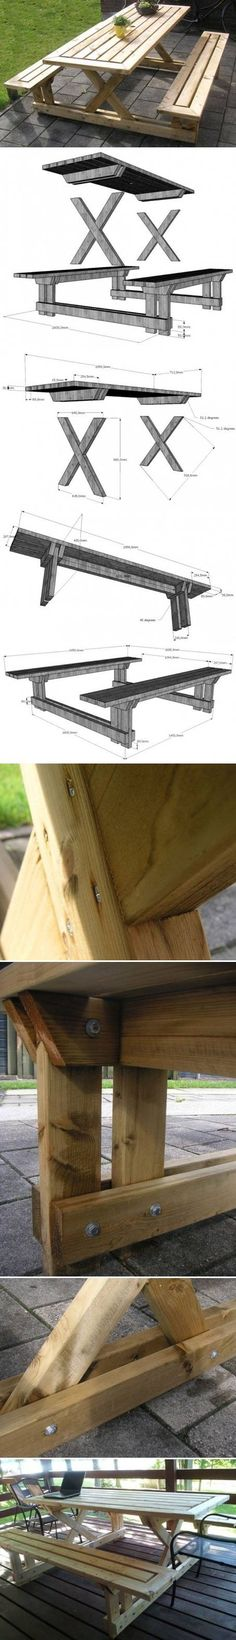 DIY Garden Bench And Table Pictures, Photos, and Images for Facebook, Tumblr, Pinterest, and Twitter